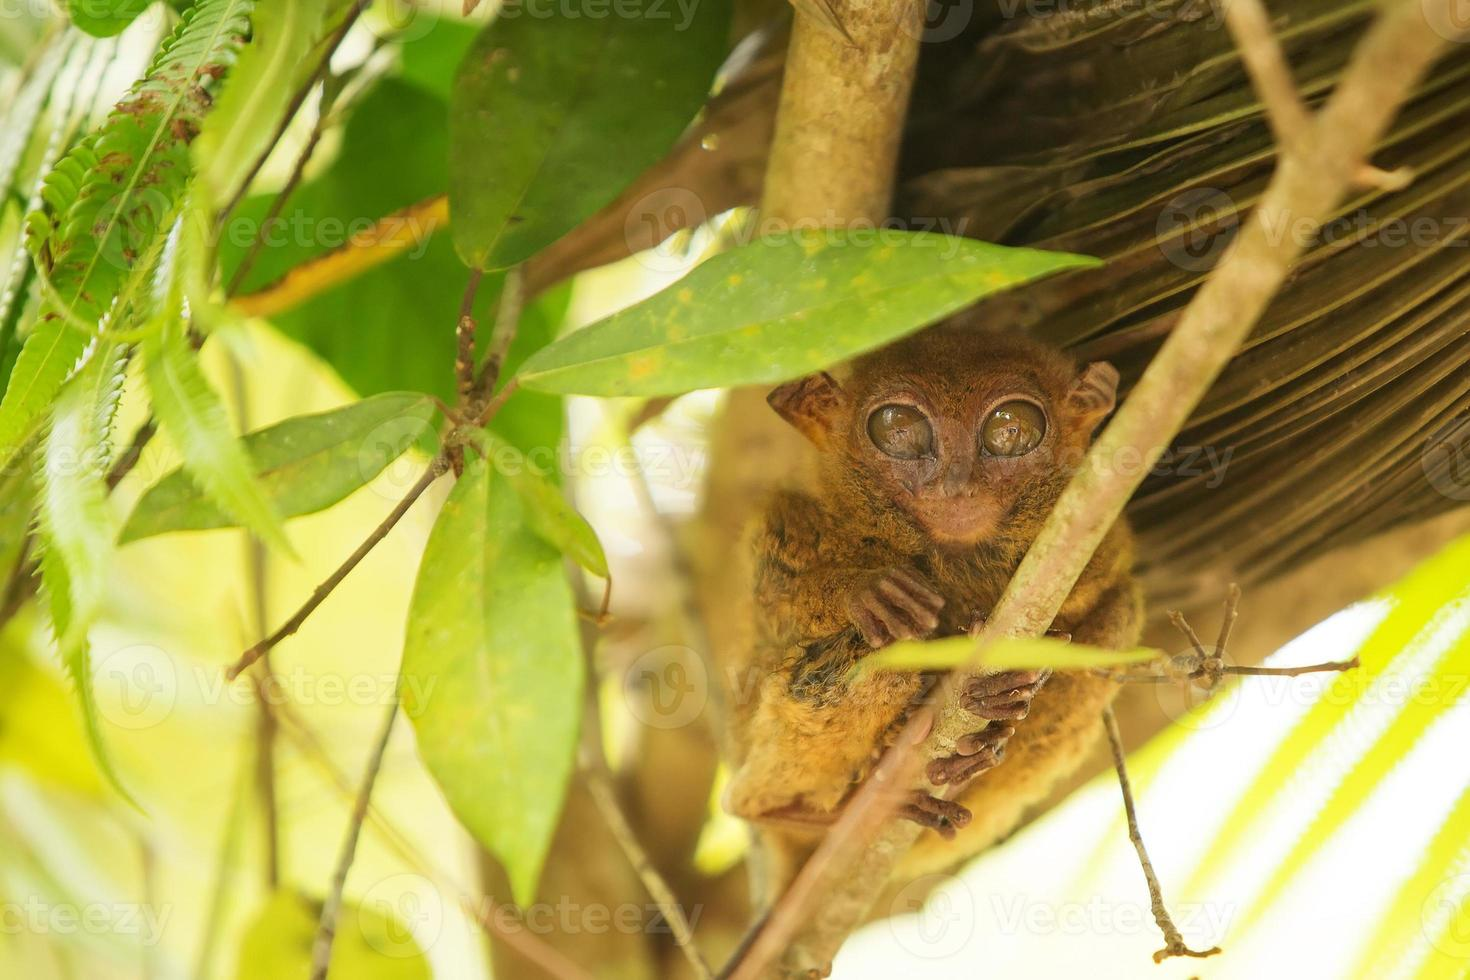 Tarsier photo